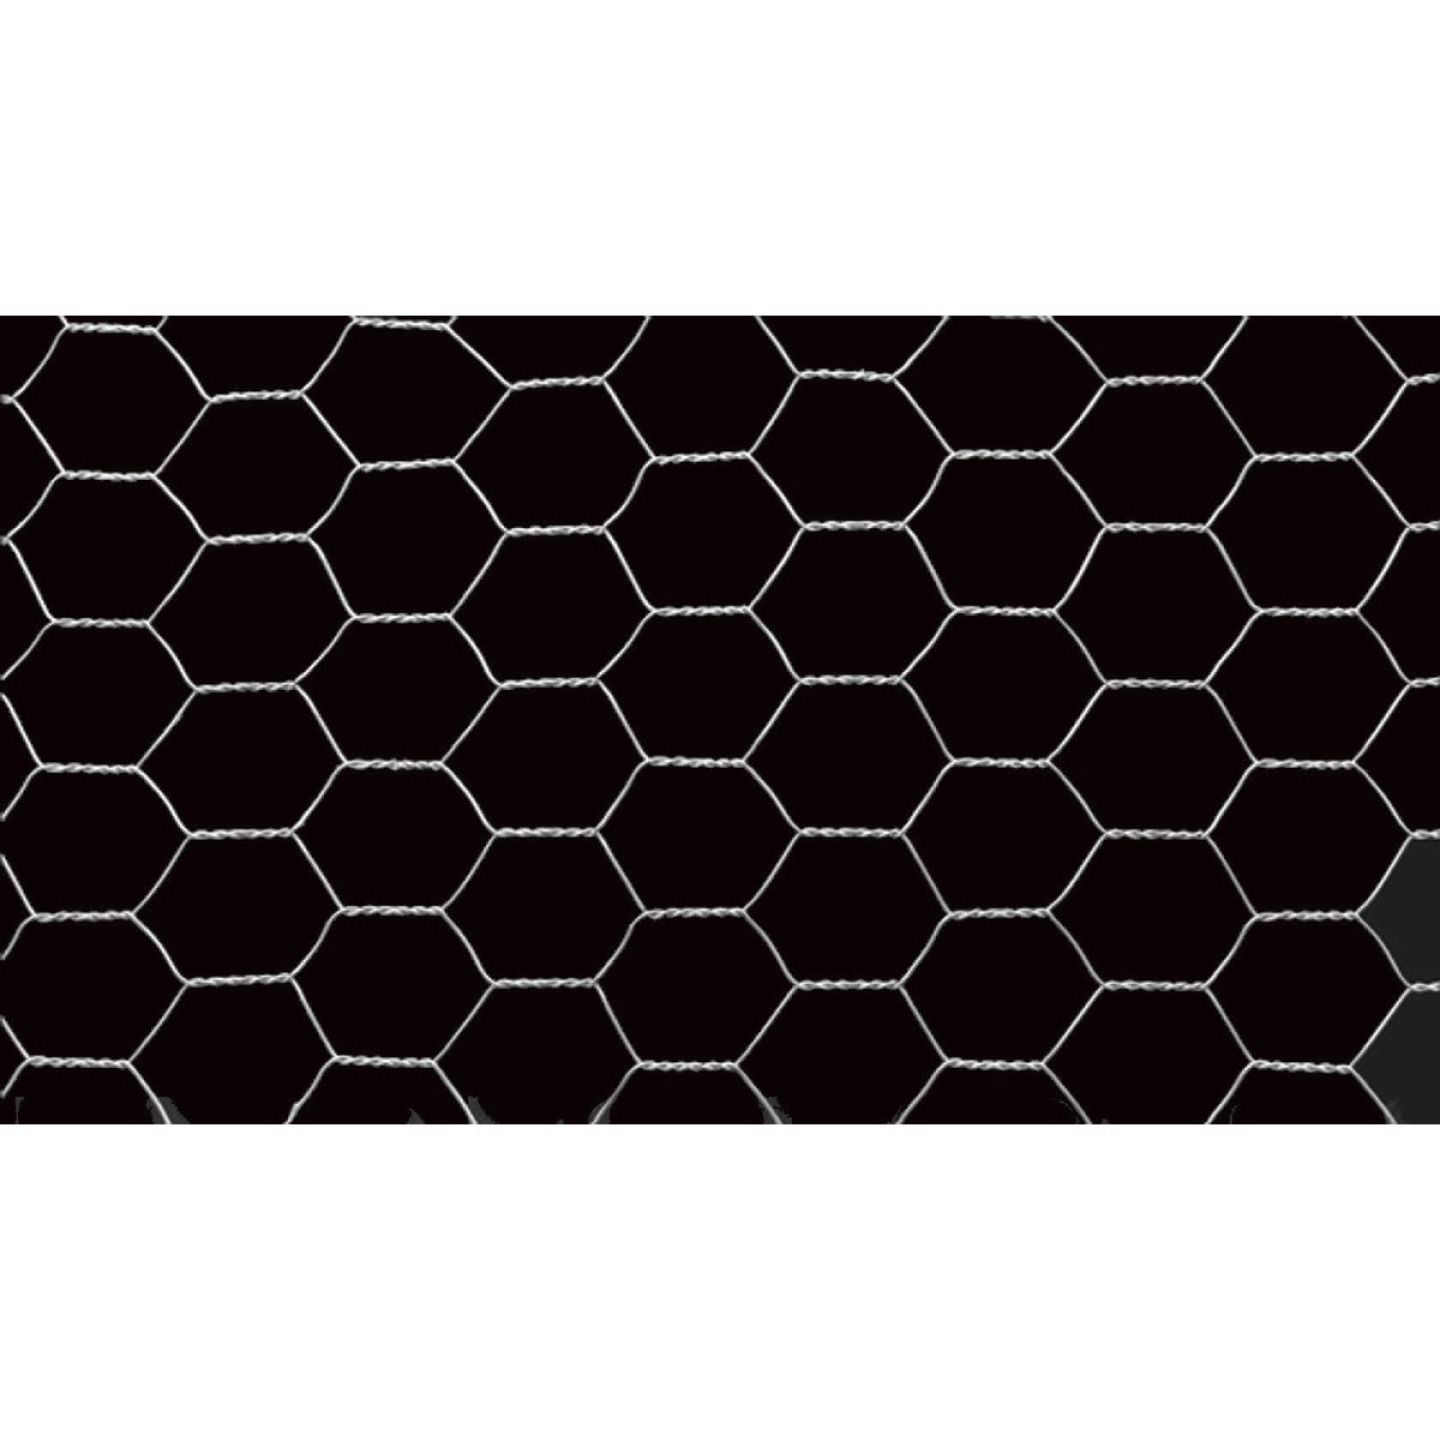 Do it 2 In. x 36 In. H. x 25 Ft. L. Hexagonal Wire Poultry Netting Image 3